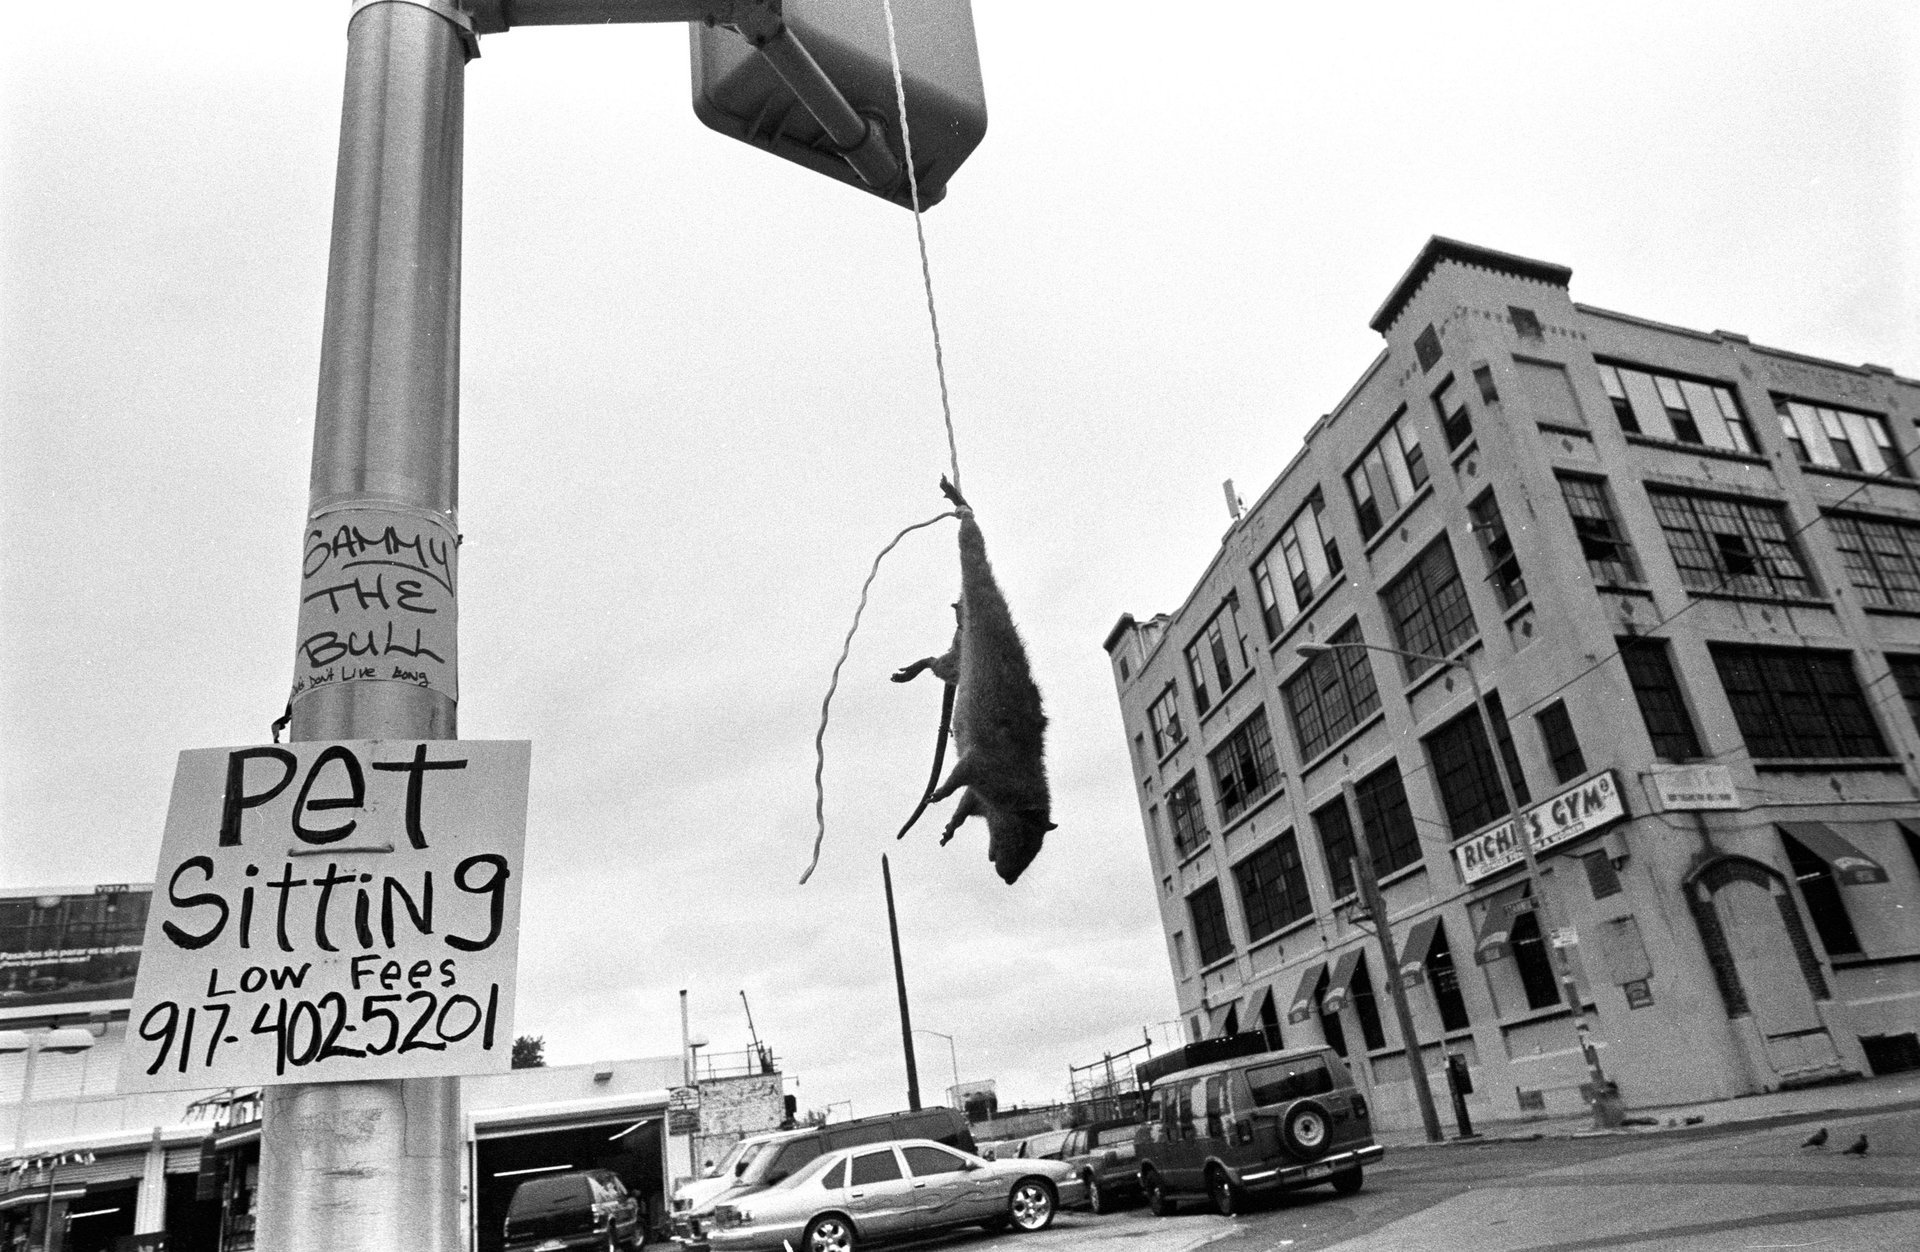 mouse hanging, street photography, black and white Bushwick, Brooklyn, 2005 © Boogie